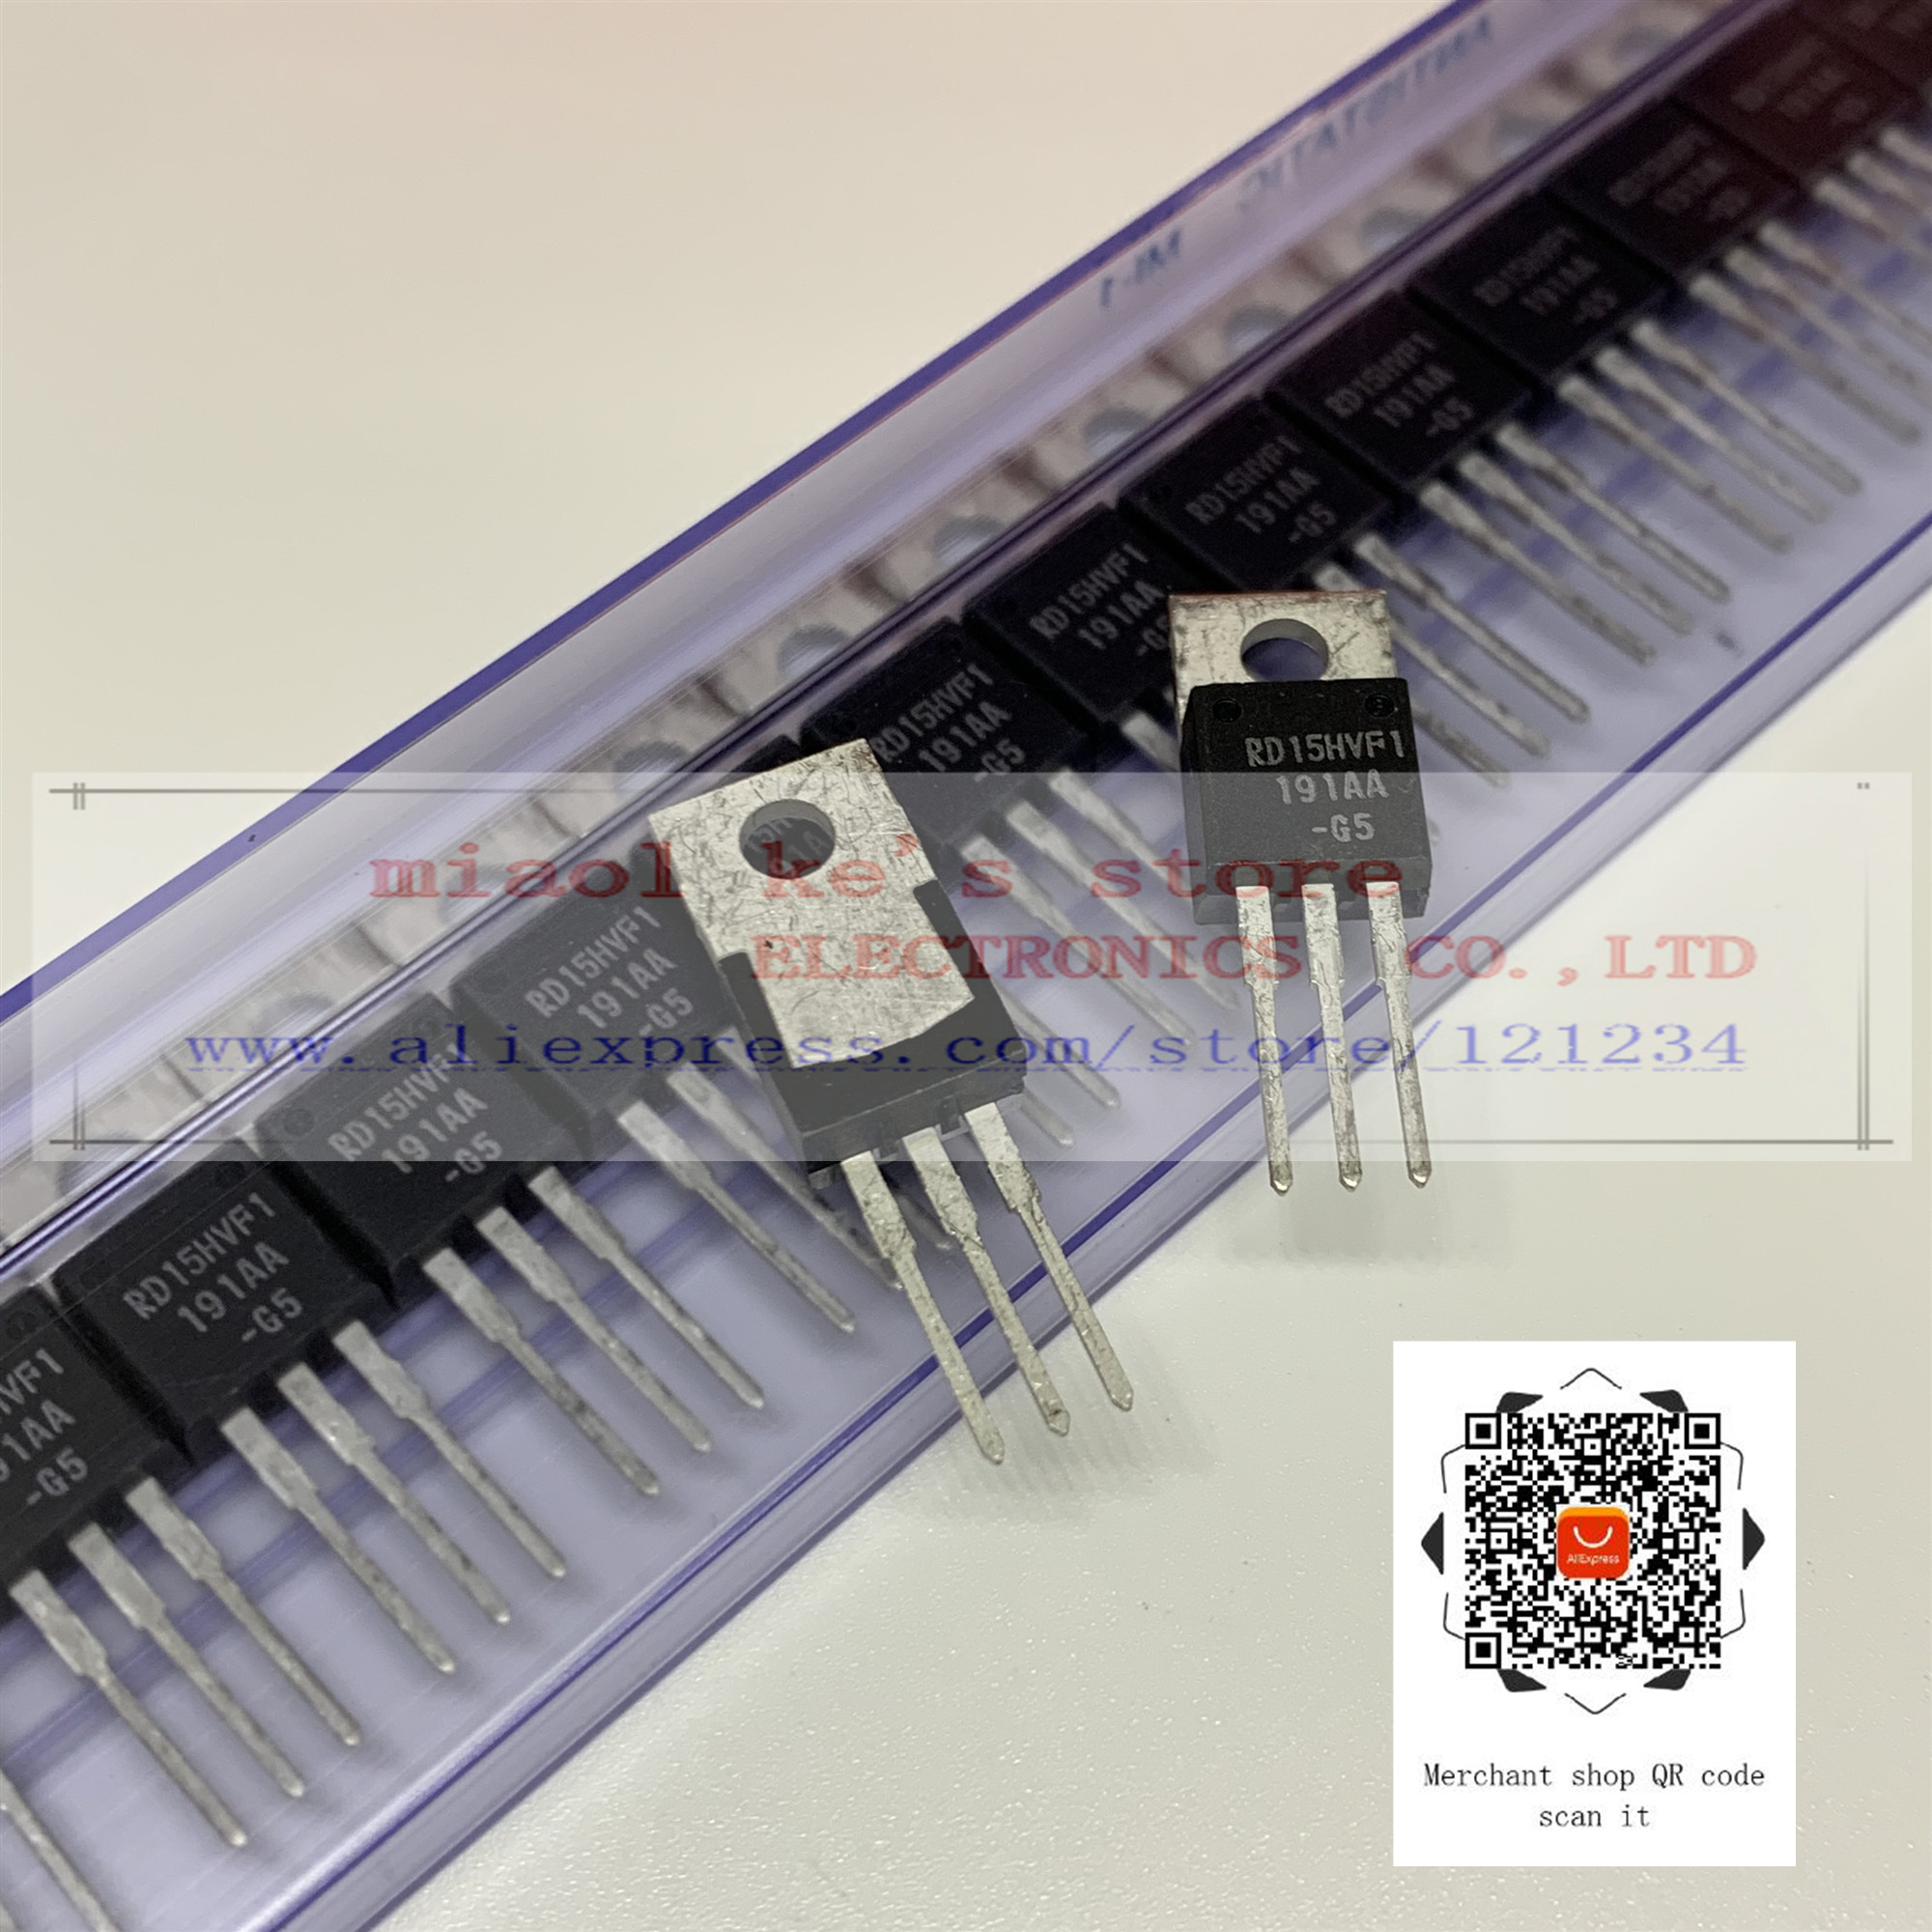 [ 5pcs - 10pcs]100%New Original; RD15HVF1 RD15HVF1-101 [ 175MHz 520MHz, 5W Replaced 2SC1972 ] High Quality Stock